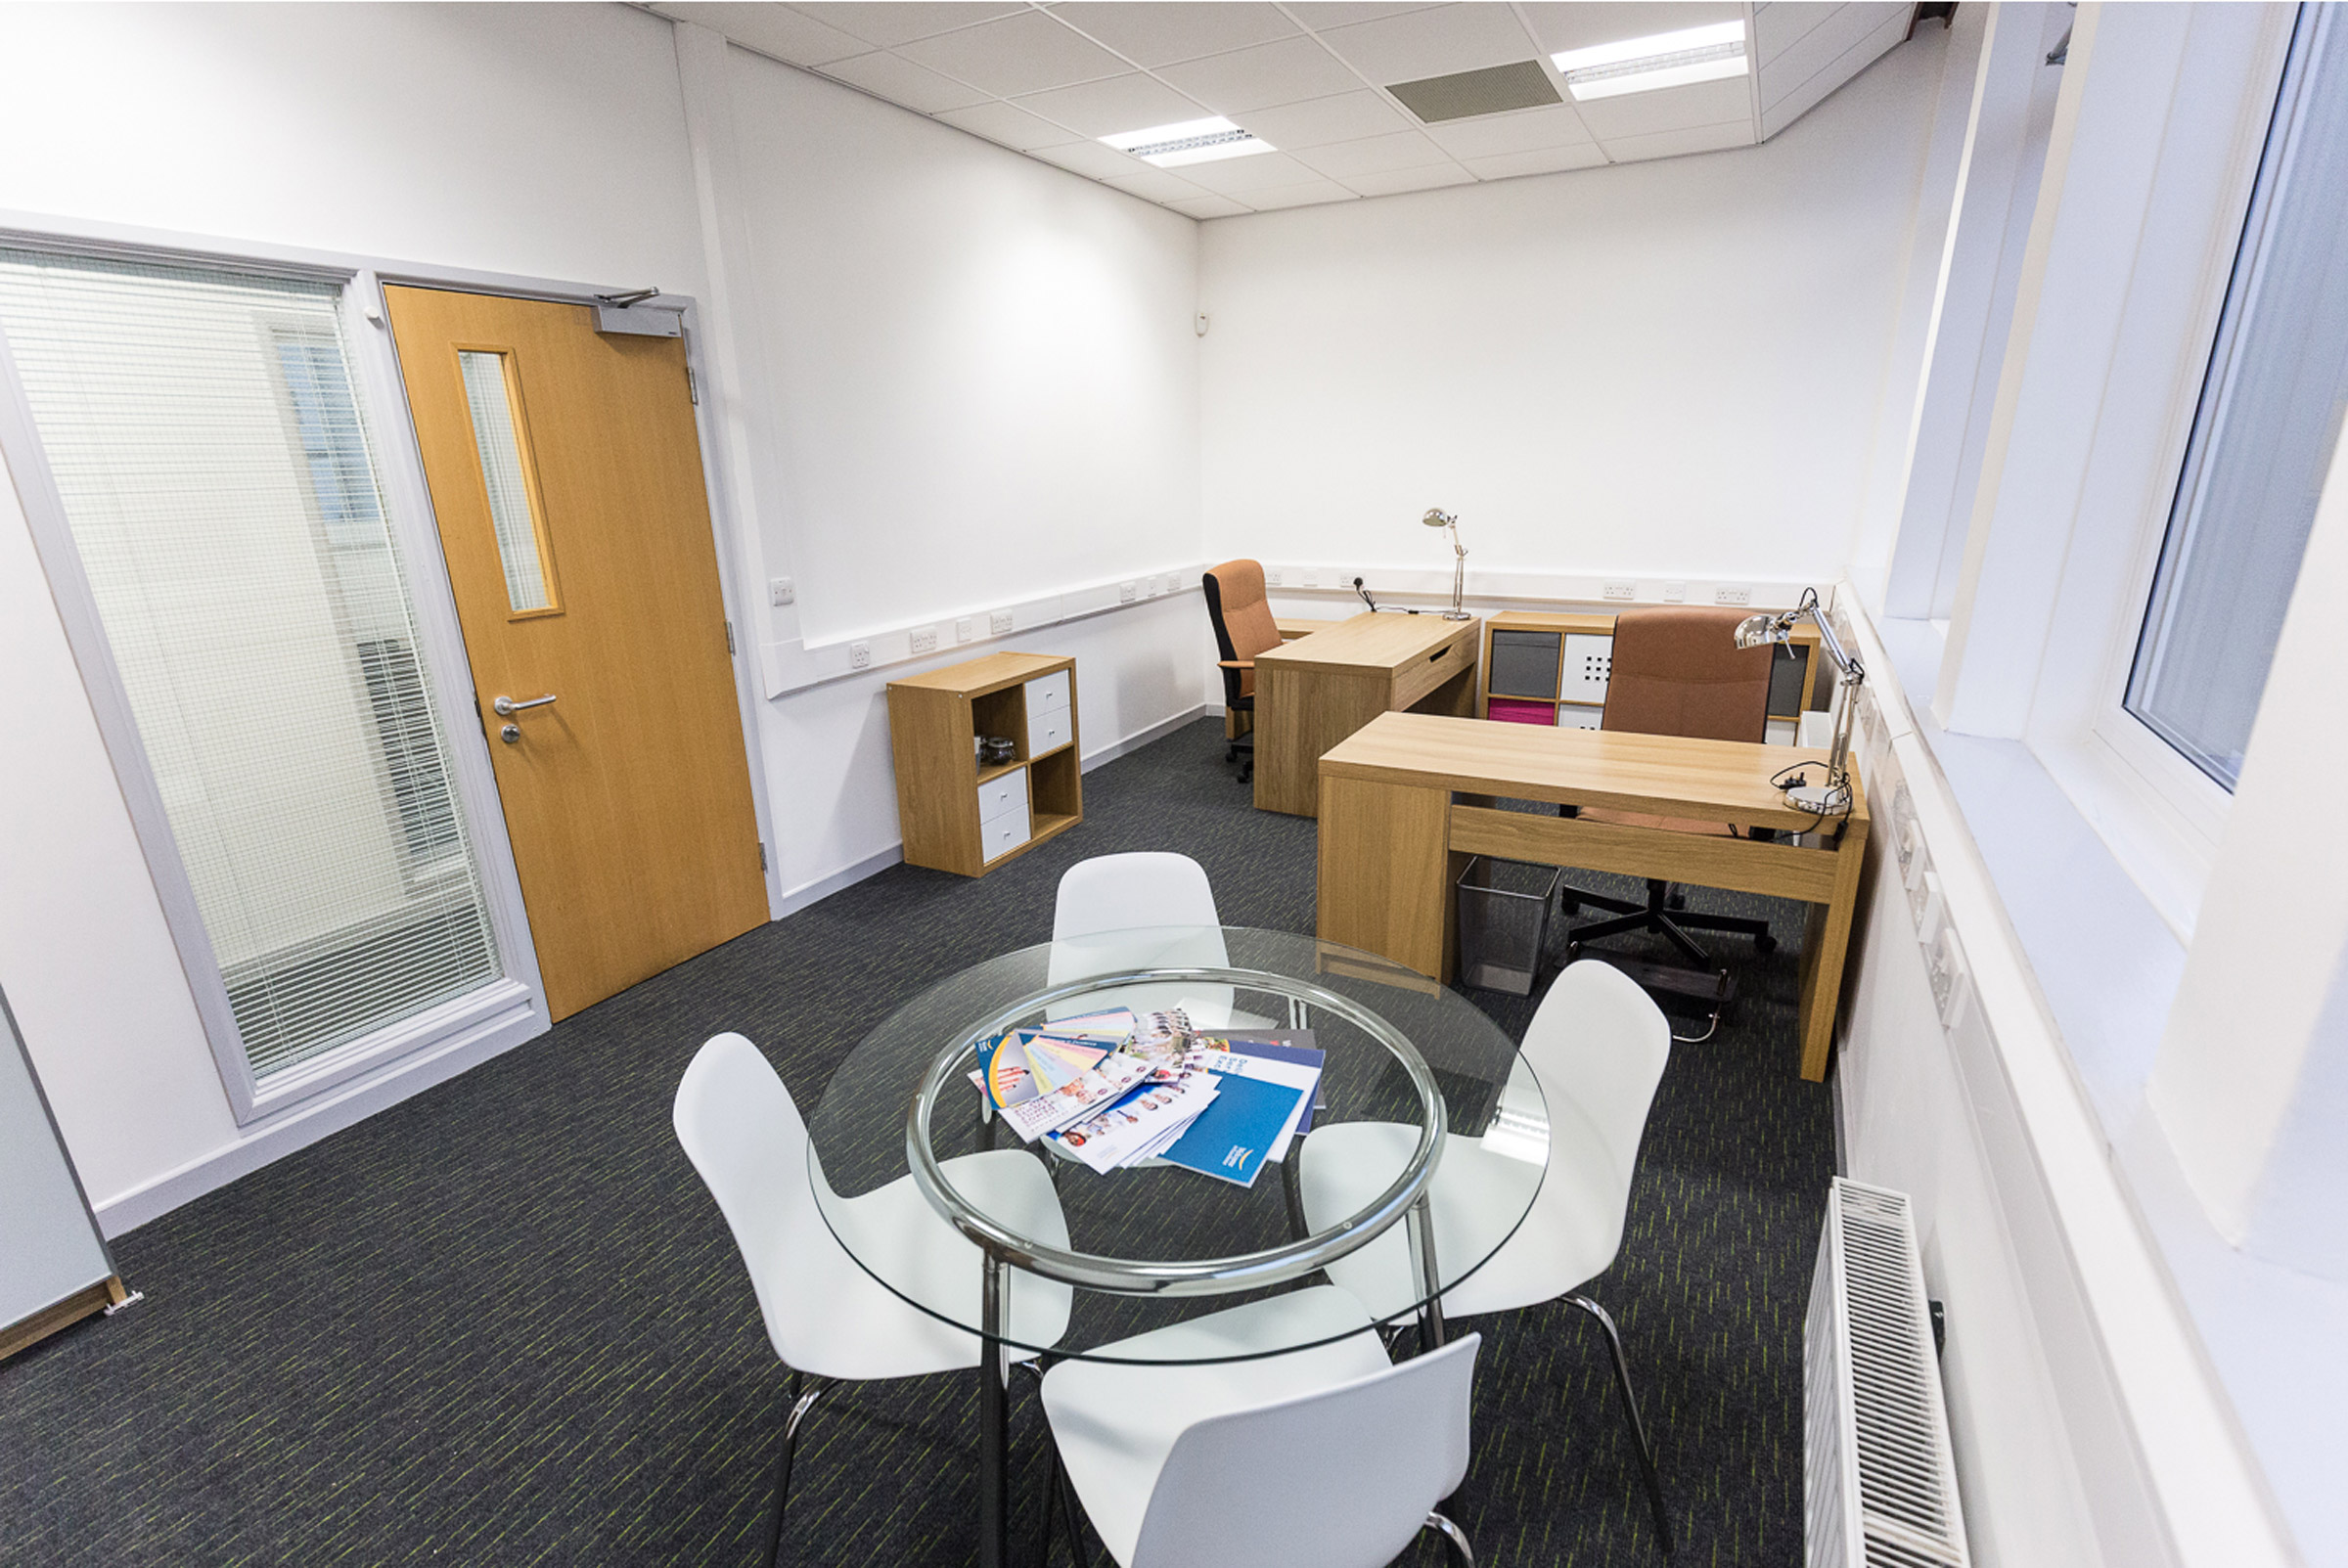 Office suite interior at The MintWorks Kendal